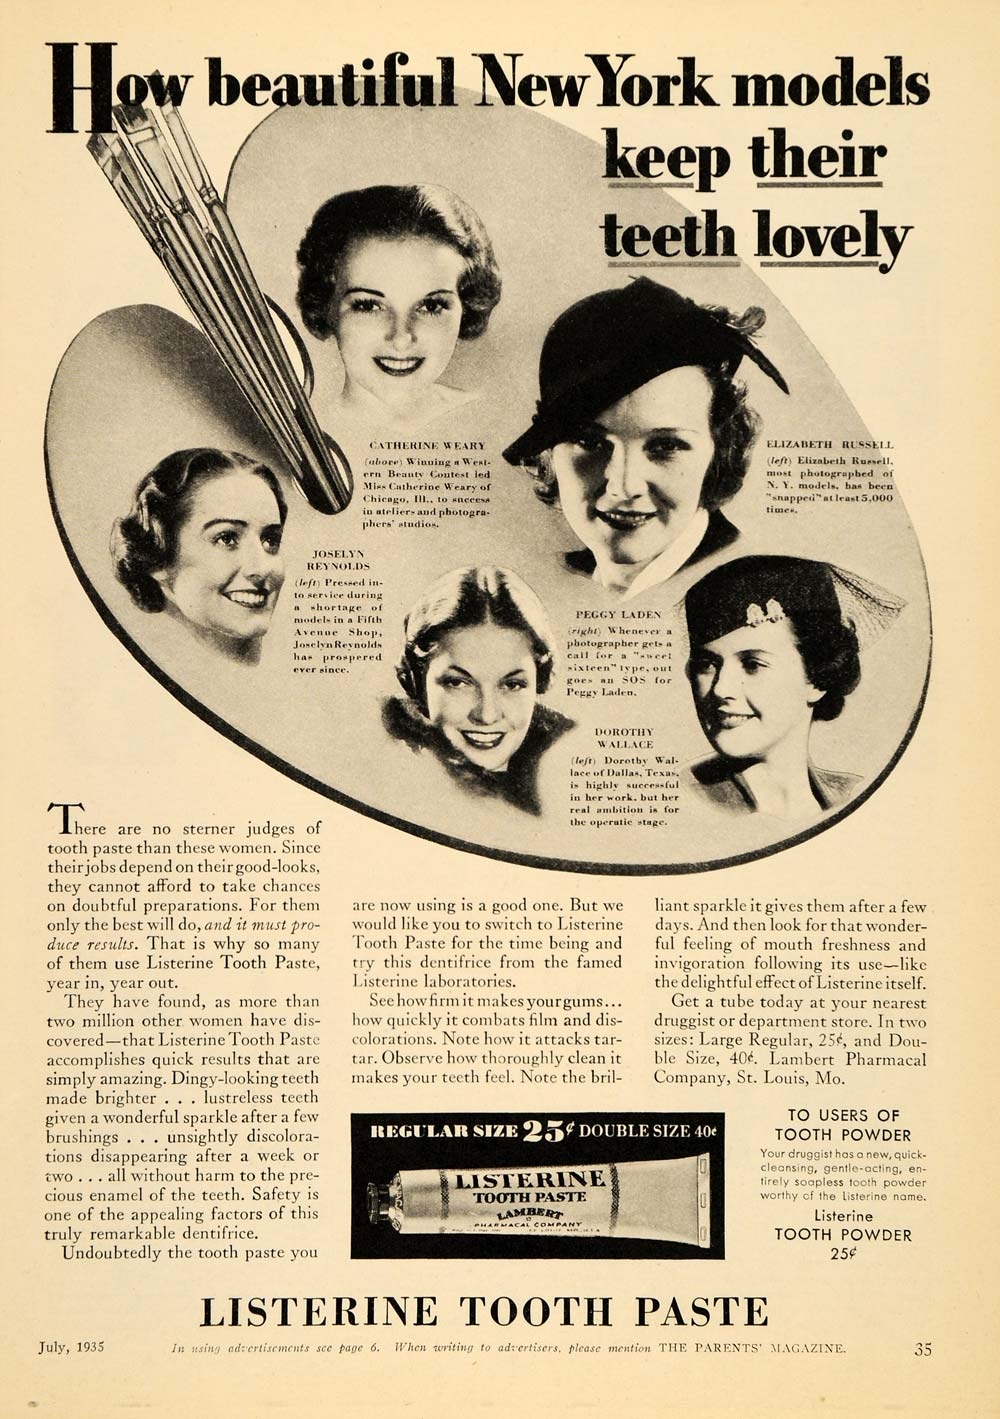 1935 Ad Listerine Toothpaste NY Model Elizabeth Russell - ORIGINAL PTS1